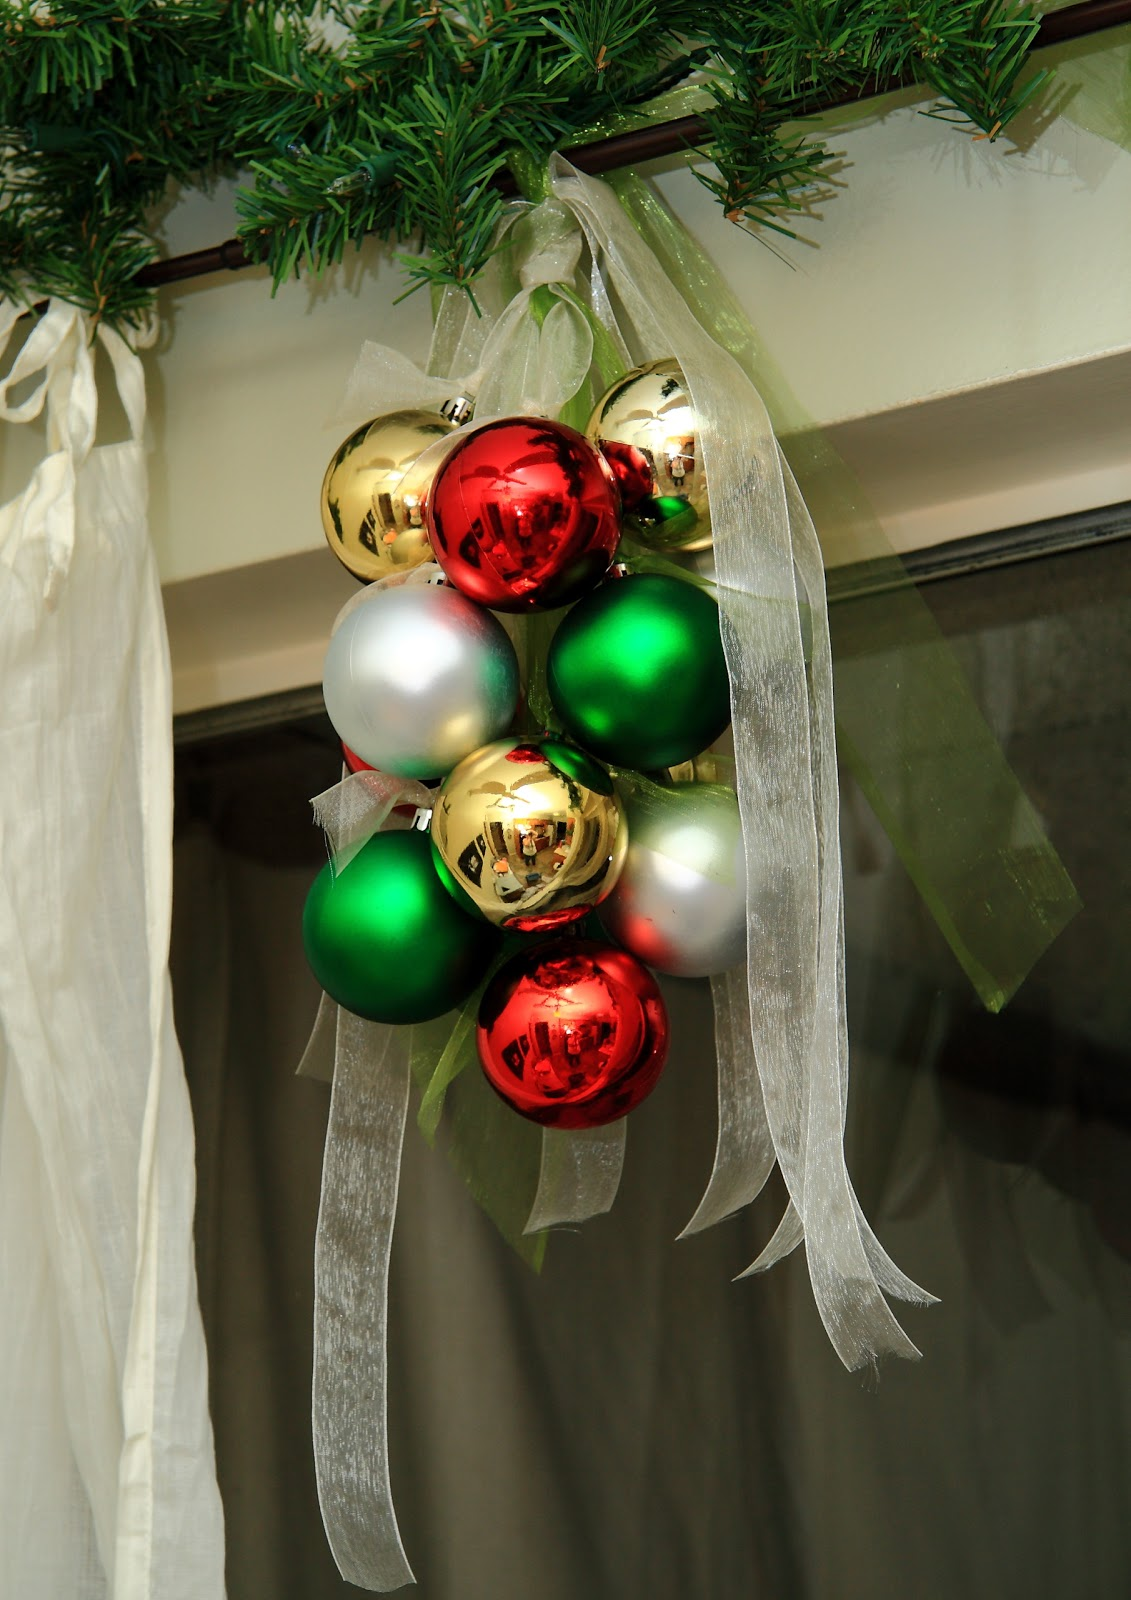 Pottery barn christmas ornaments - Save